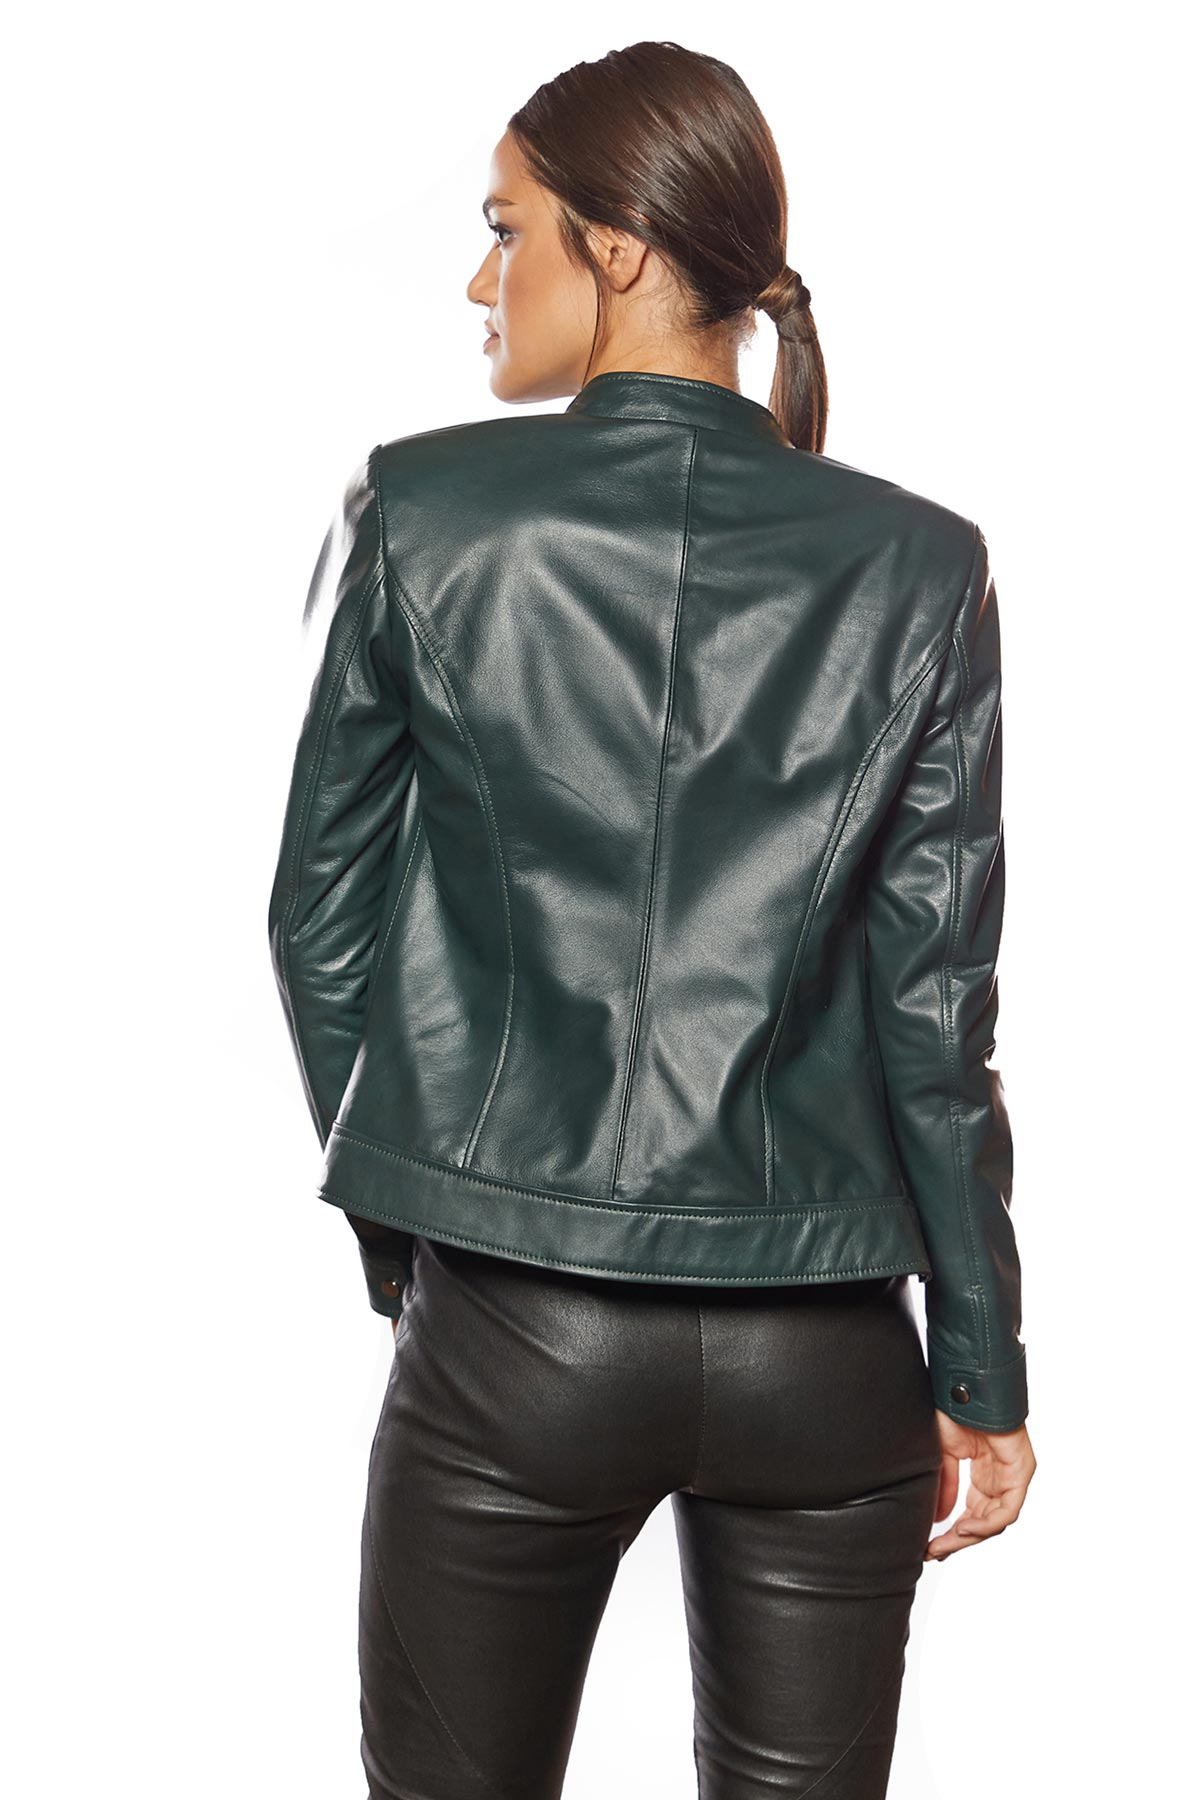 green leather jacket womens